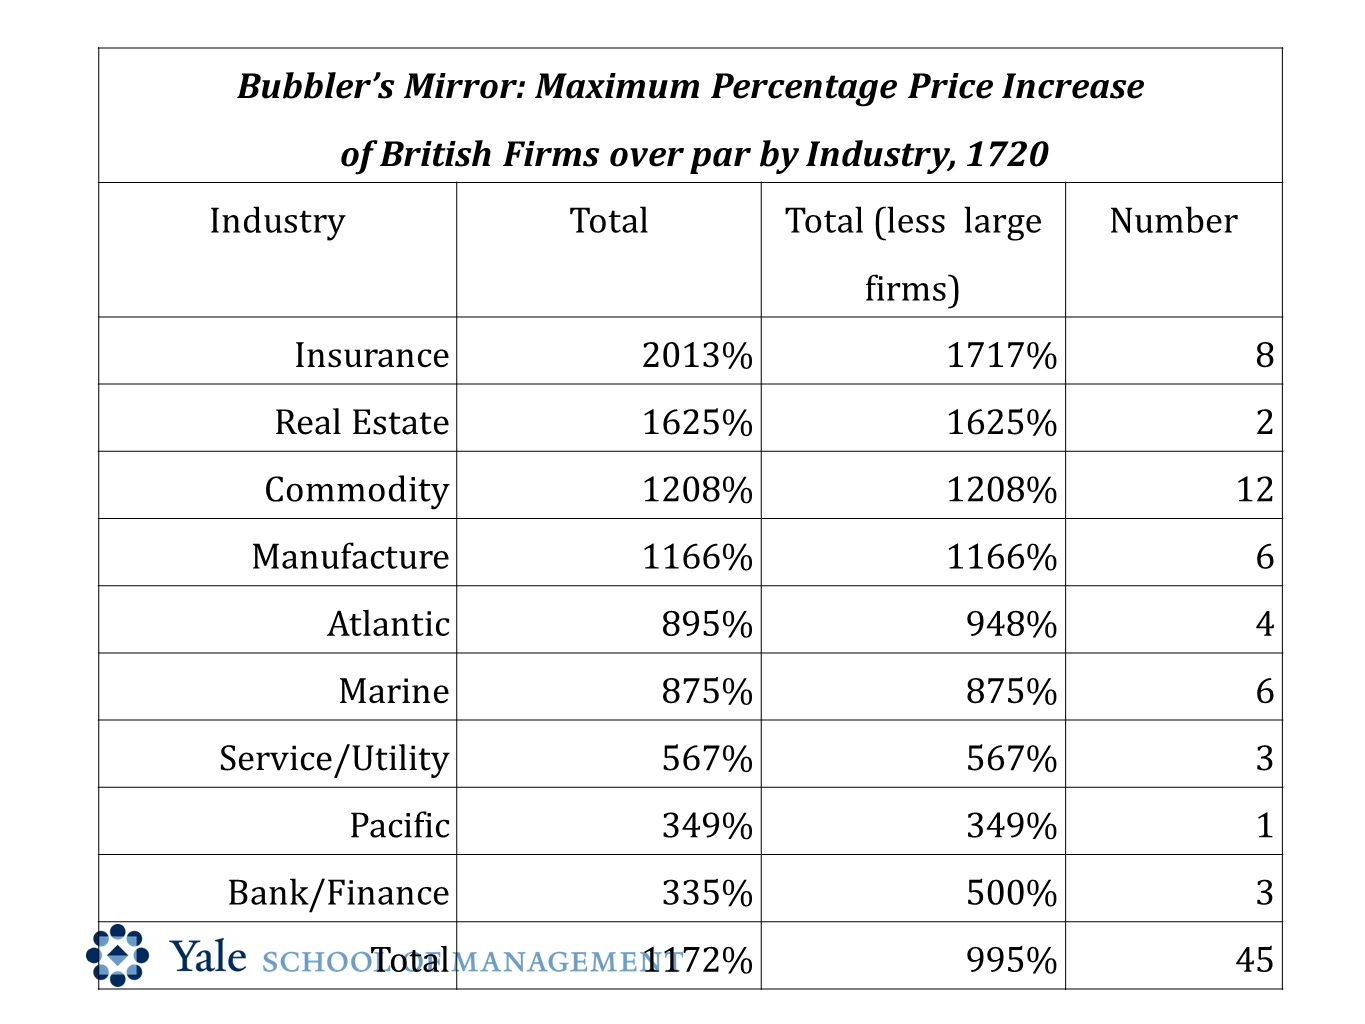 Bubbler's Mirror: Maximum Percentage Price Increase of British Firms over par by Industry, 1720 IndustryTotal Total (less large firms) Number Insurance2013%1717%8 Real Estate1625% 2 Commodity1208% 12 Manufacture1166% 6 Atlantic895%948%4 Marine875% 6 Service/Utility567% 3 Pacific349% 1 Bank/Finance335%500%3 Total1172%995%45